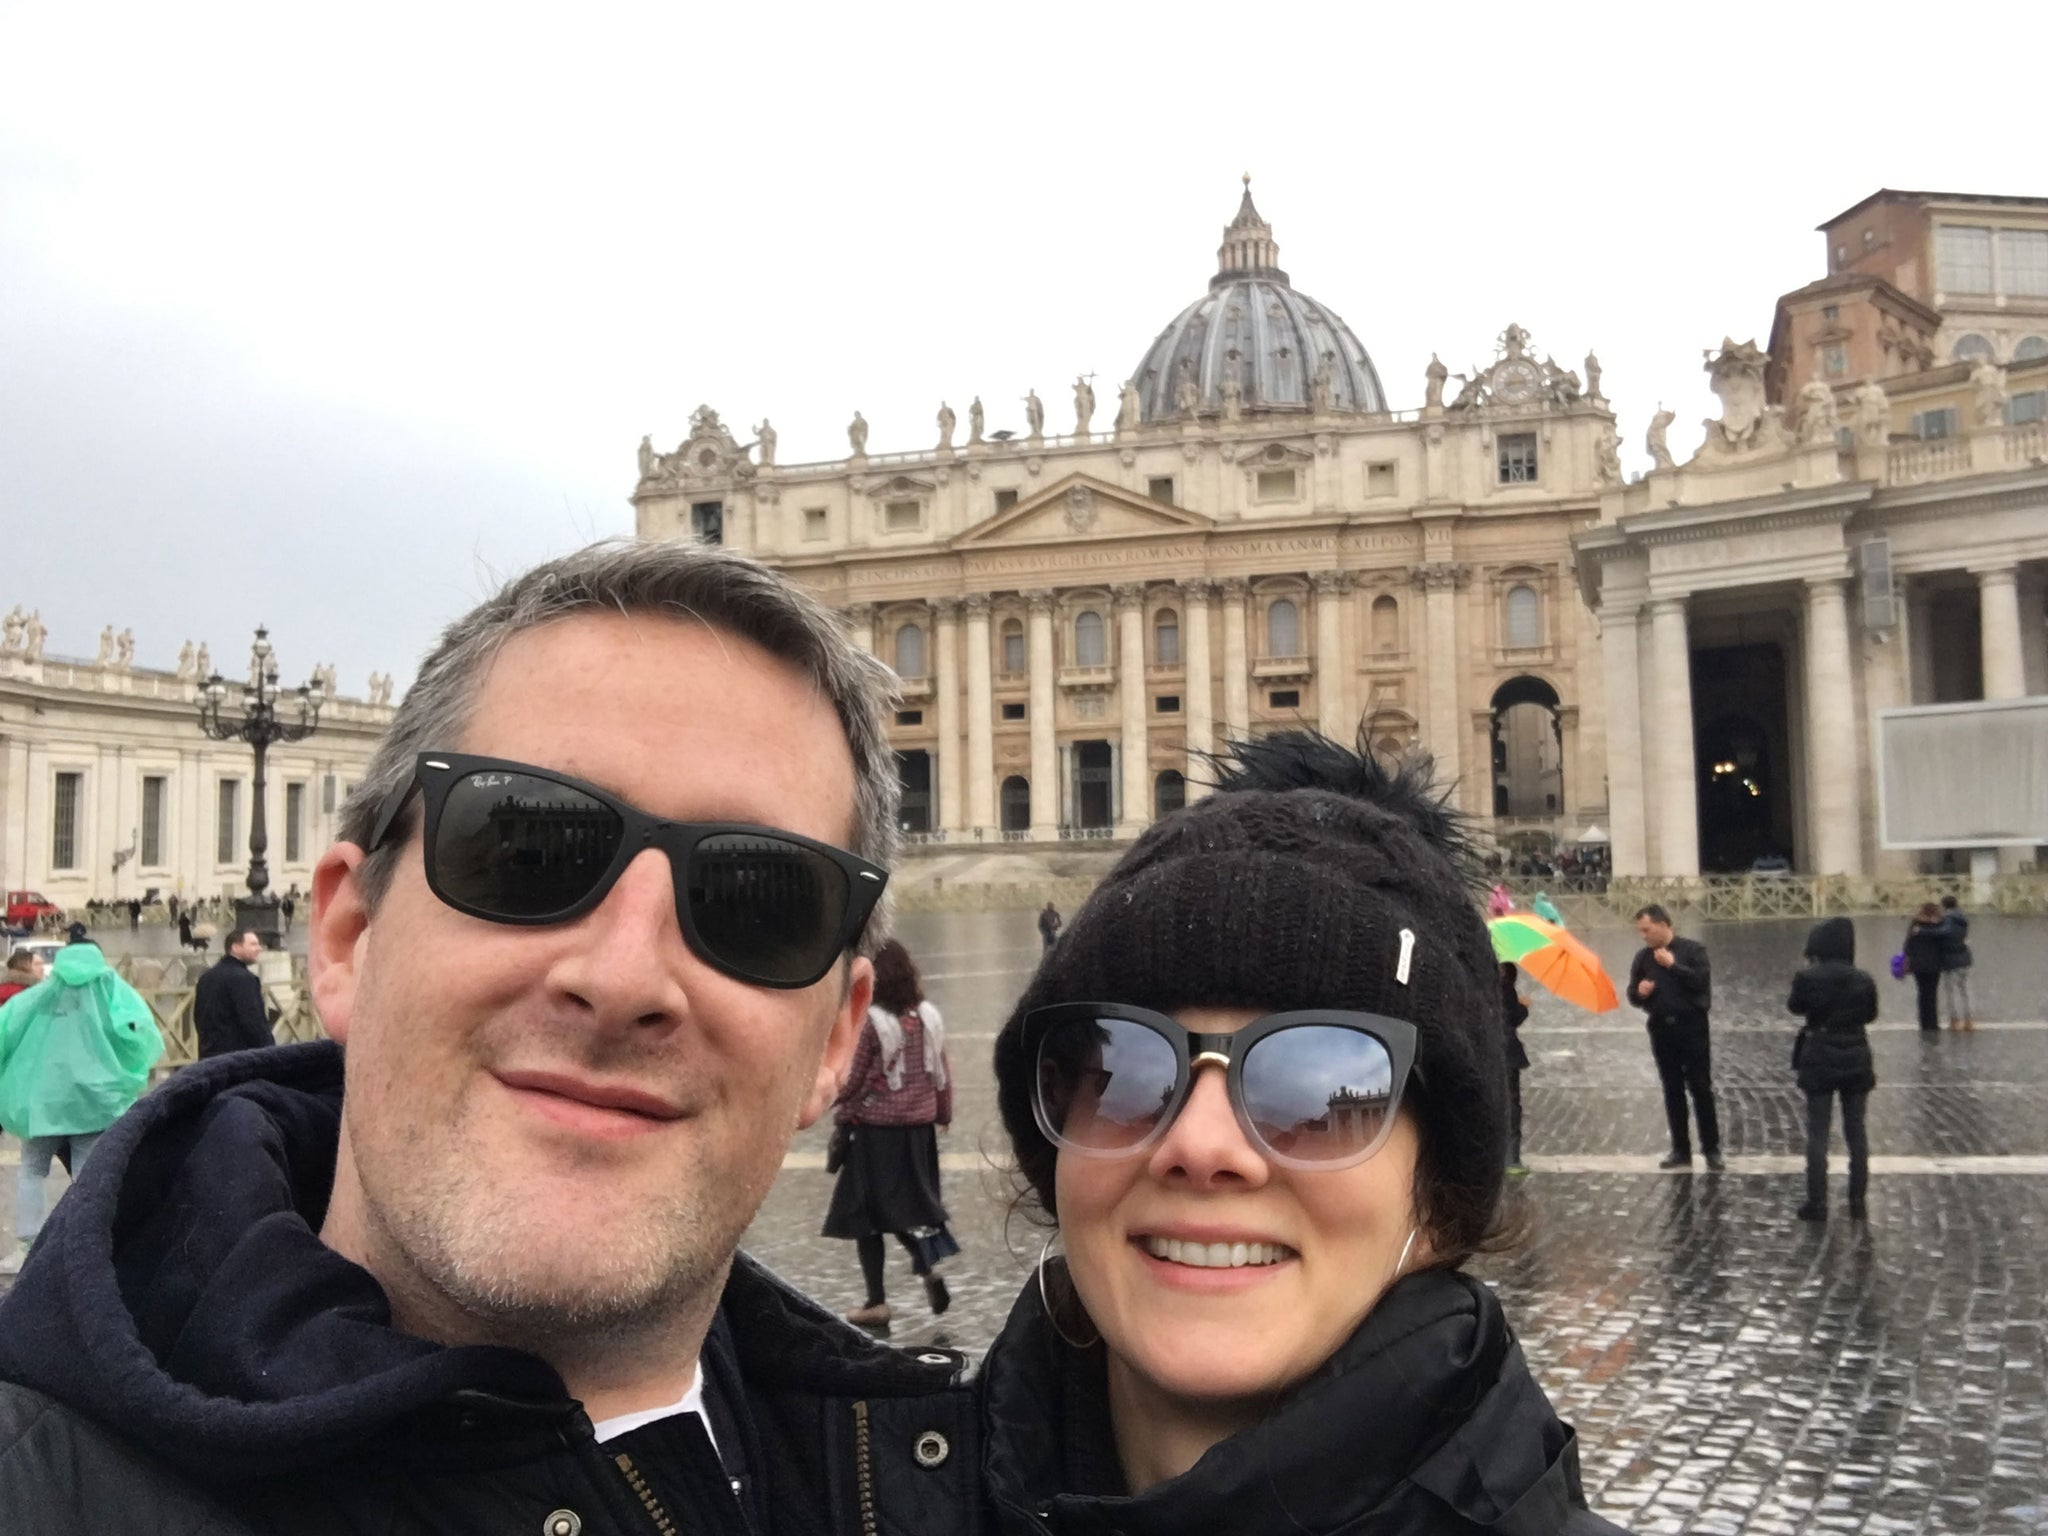 aggie and chris from the proper soap company in rome